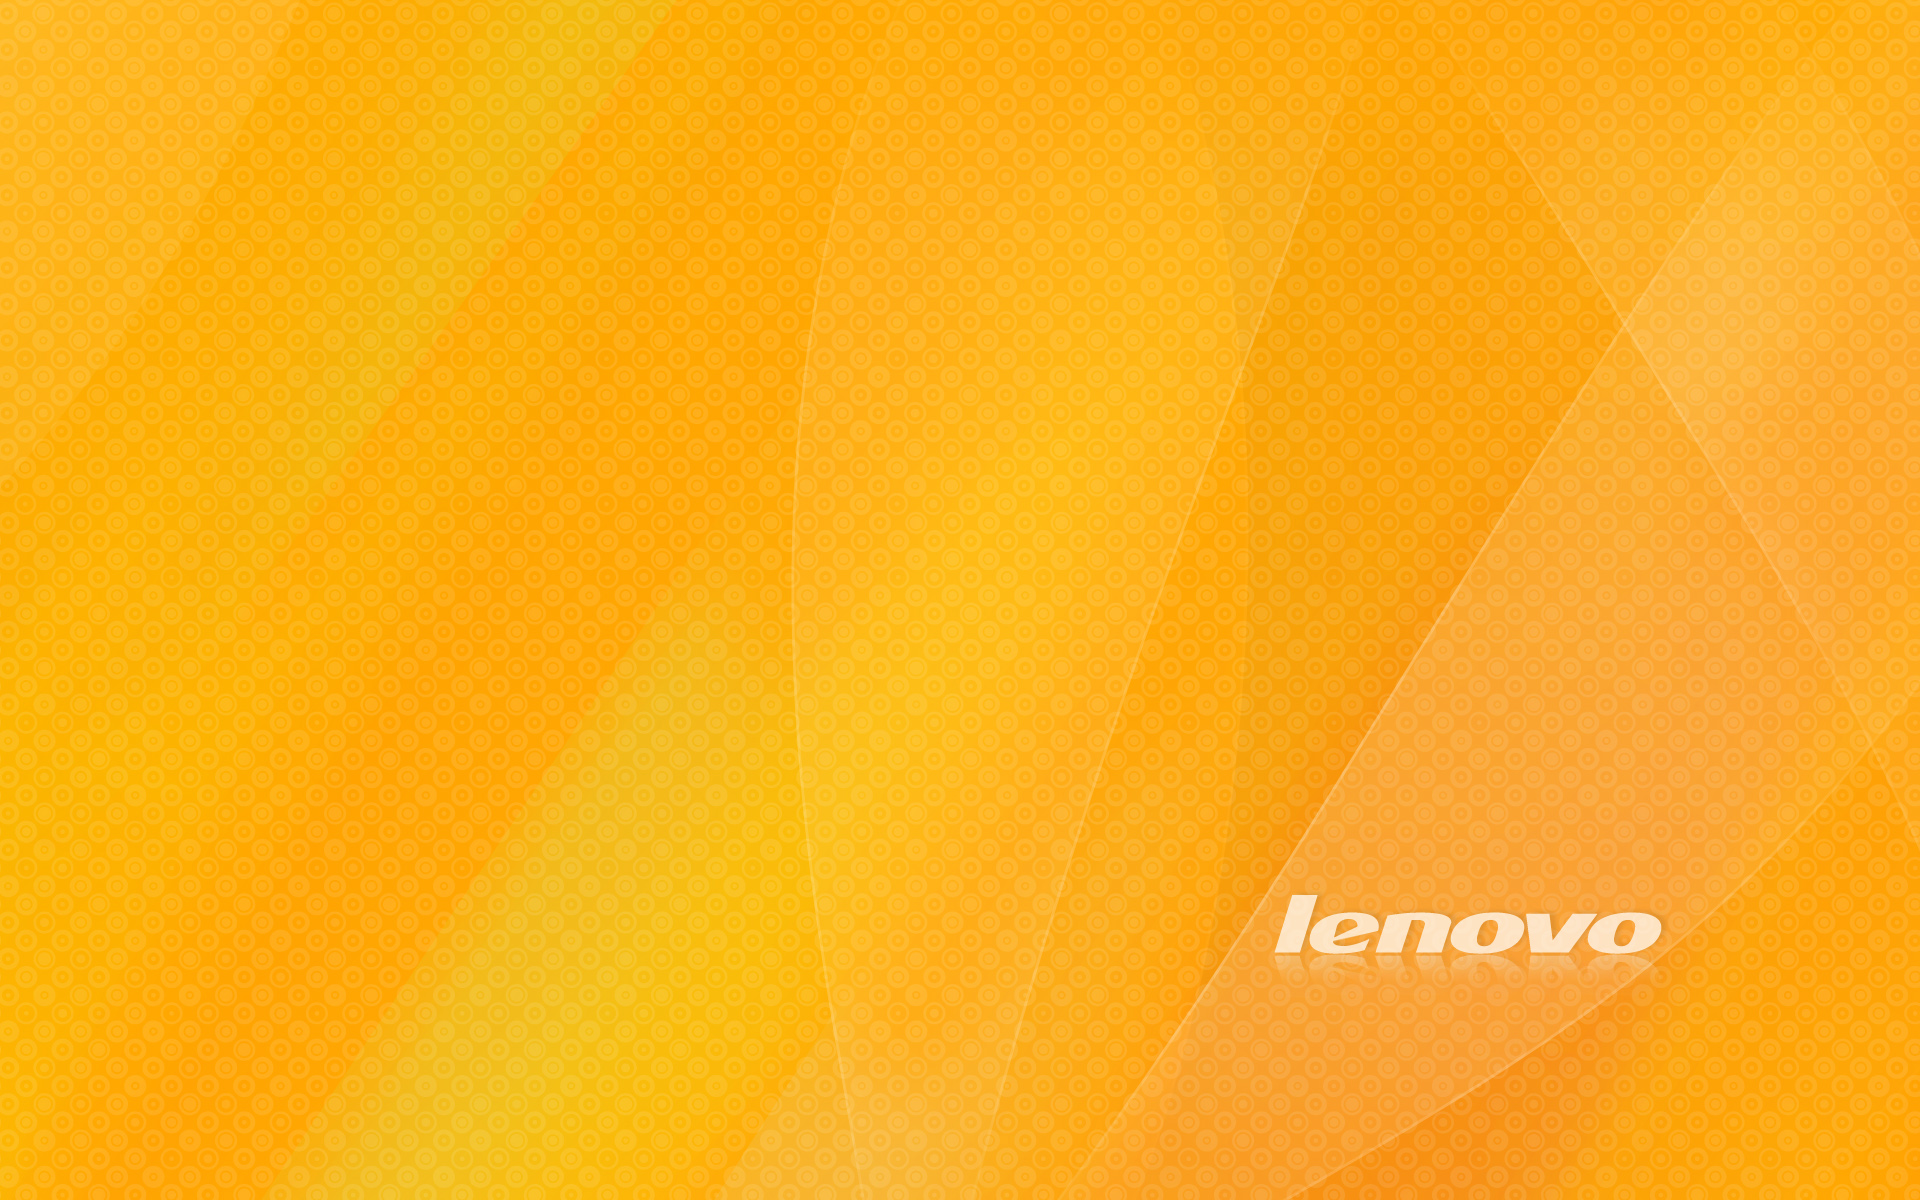 Lenovo Wallpaper Collection in HD for Download